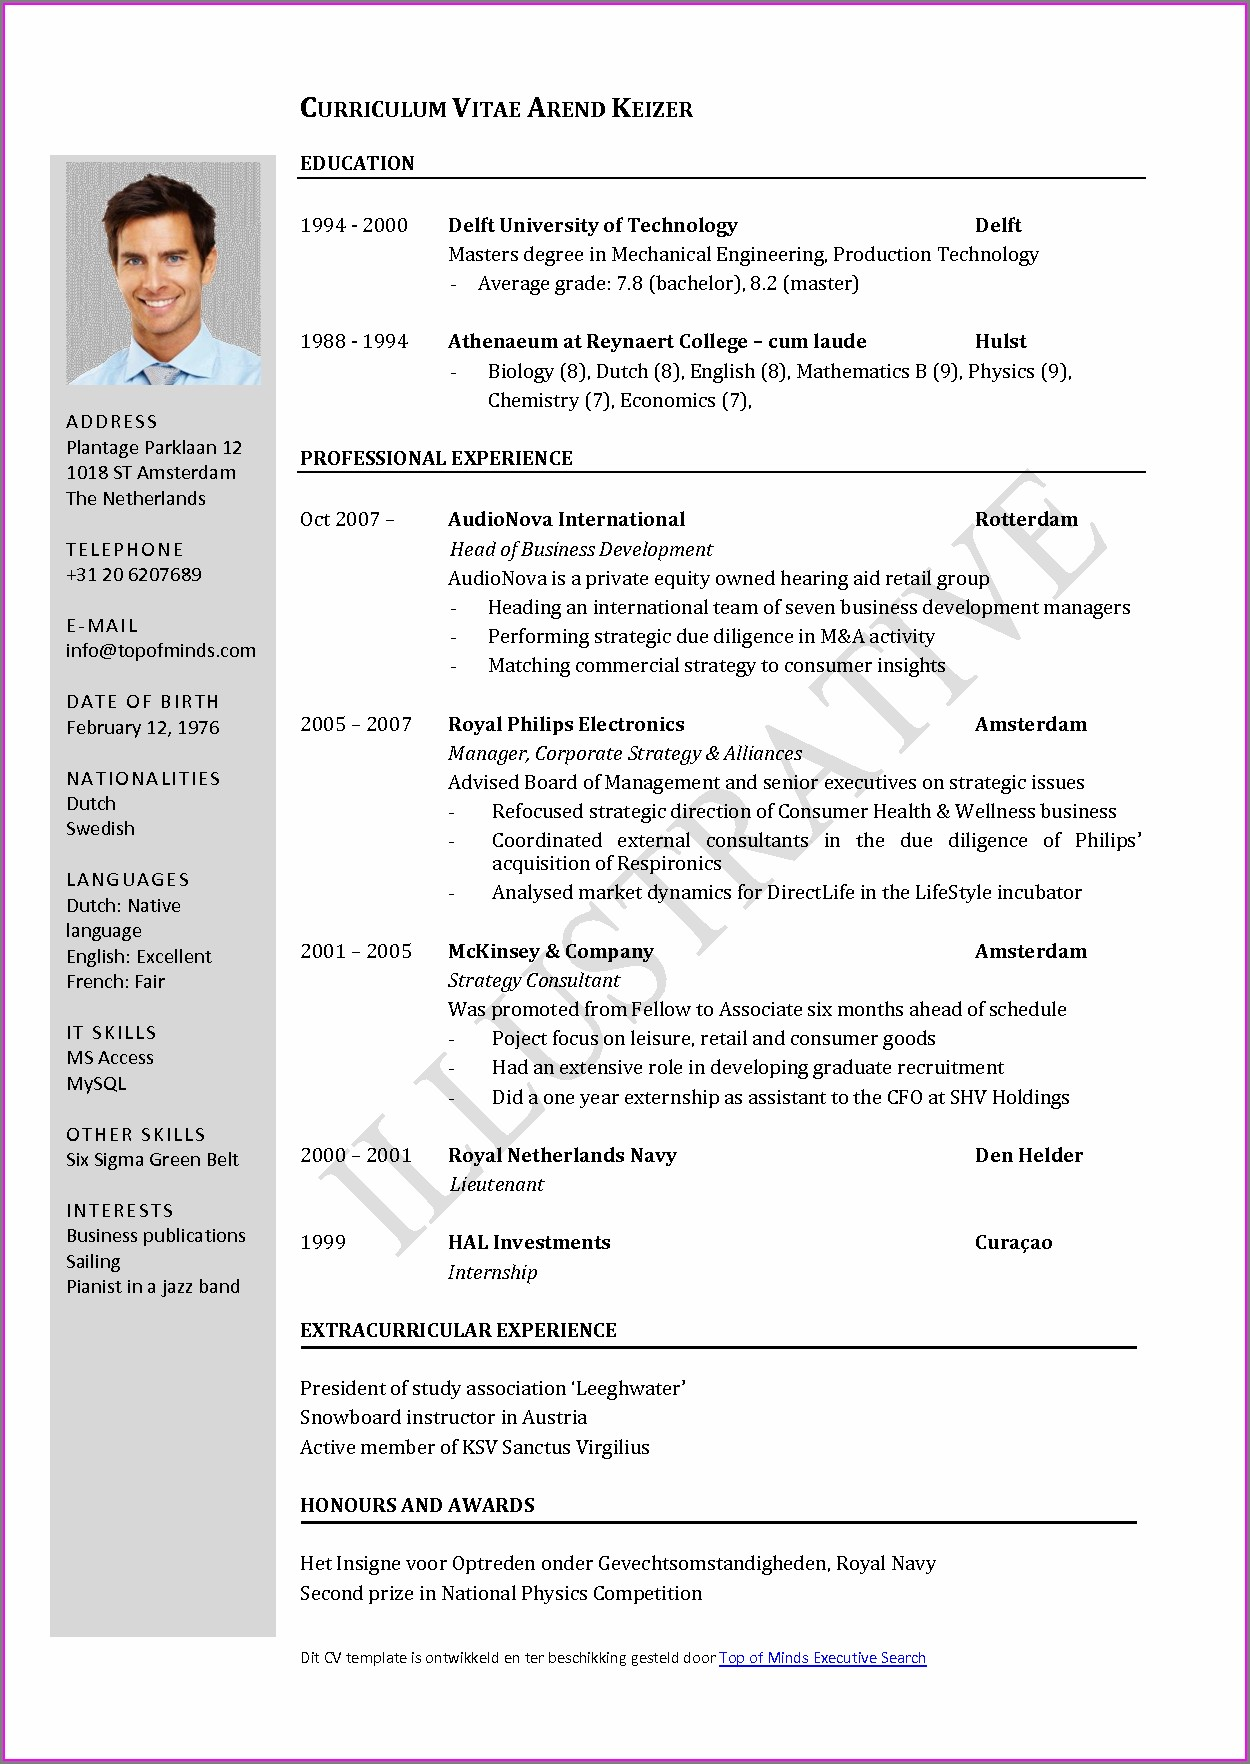 Free Curriculum Vitae Template For Teachers